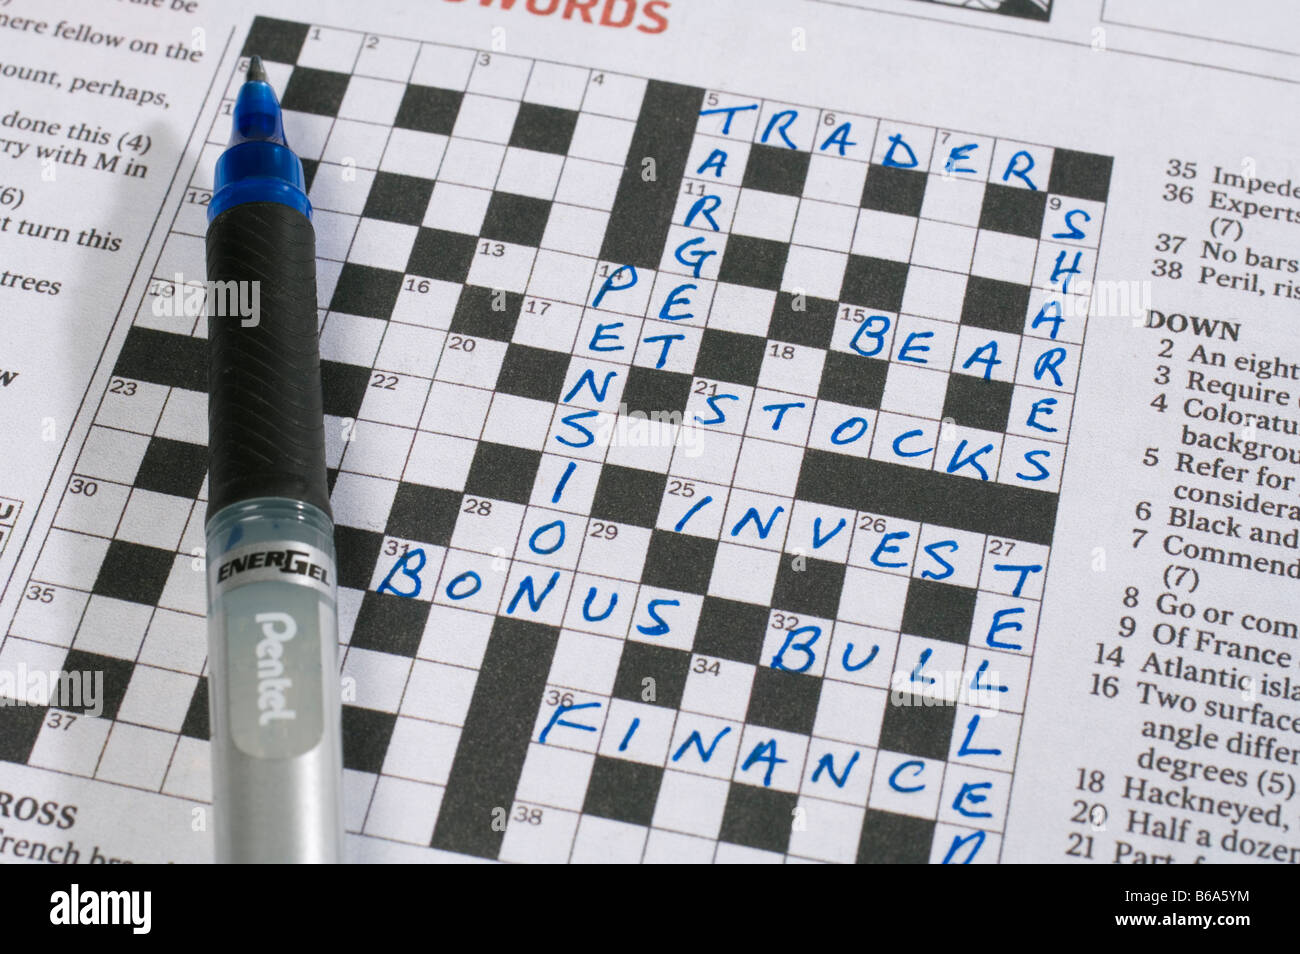 A Crossword Puzzle In Newspaper With Words Relating To Business And Stocks Shares Investments